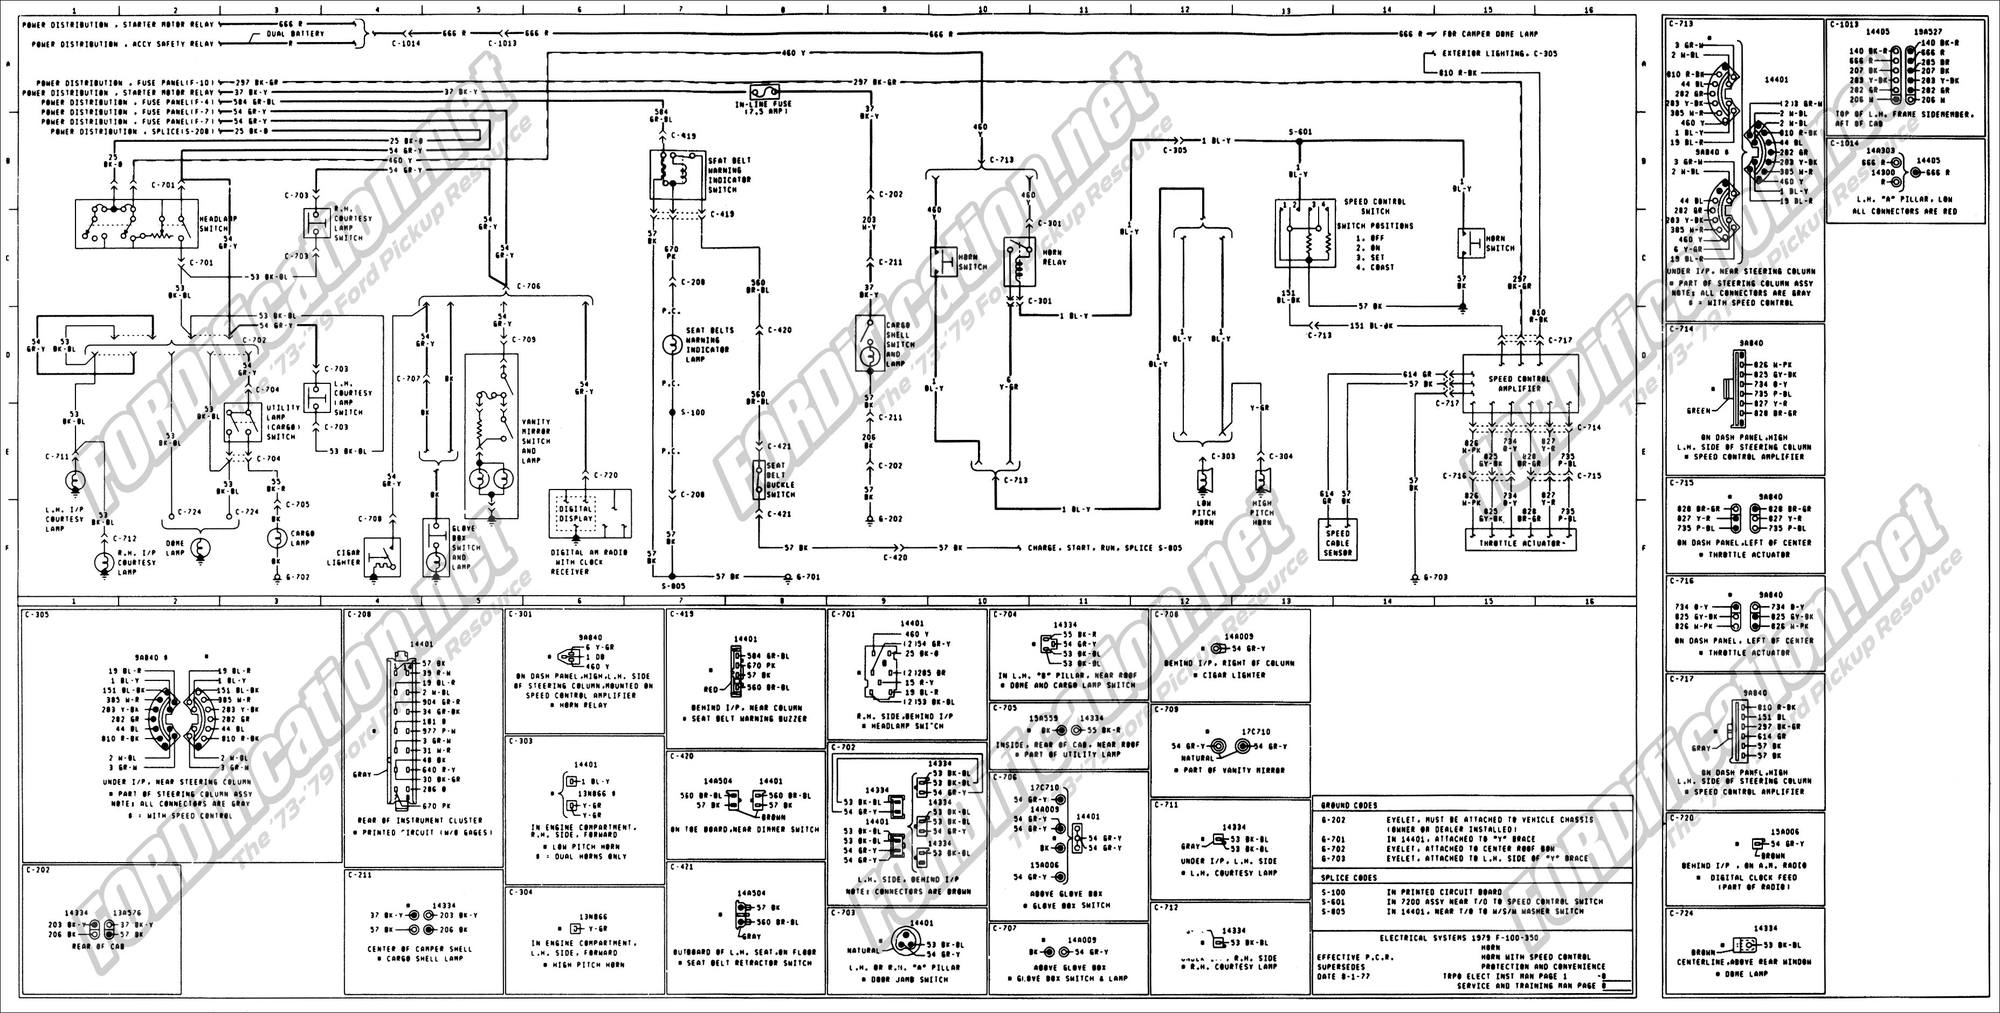 Bmw wiring diagram java wiring diagrams on ford lynx wiring diagram Ford F-150 Wiring Diagram 1964 Ford Wiring Diagram